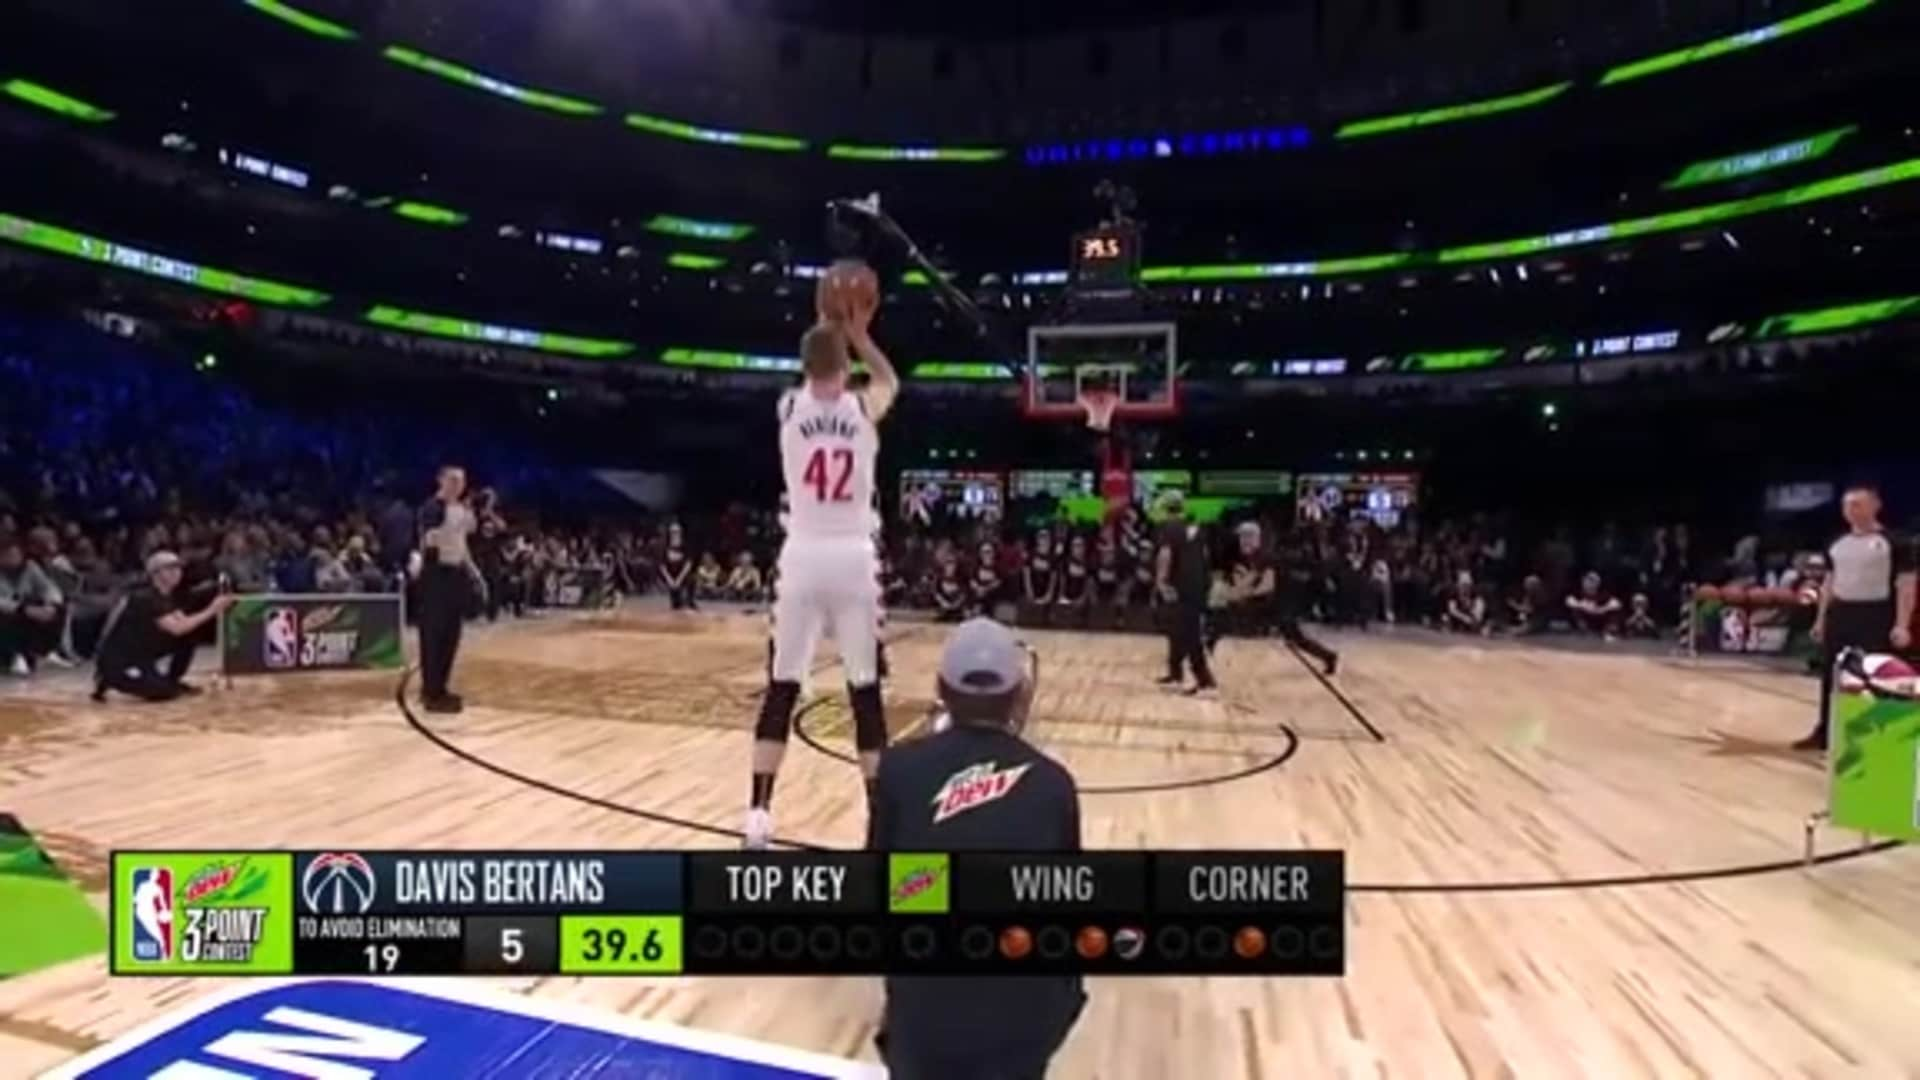 Davis Bertans Opening Round 2020 NBA All-Star 3-Point Contest